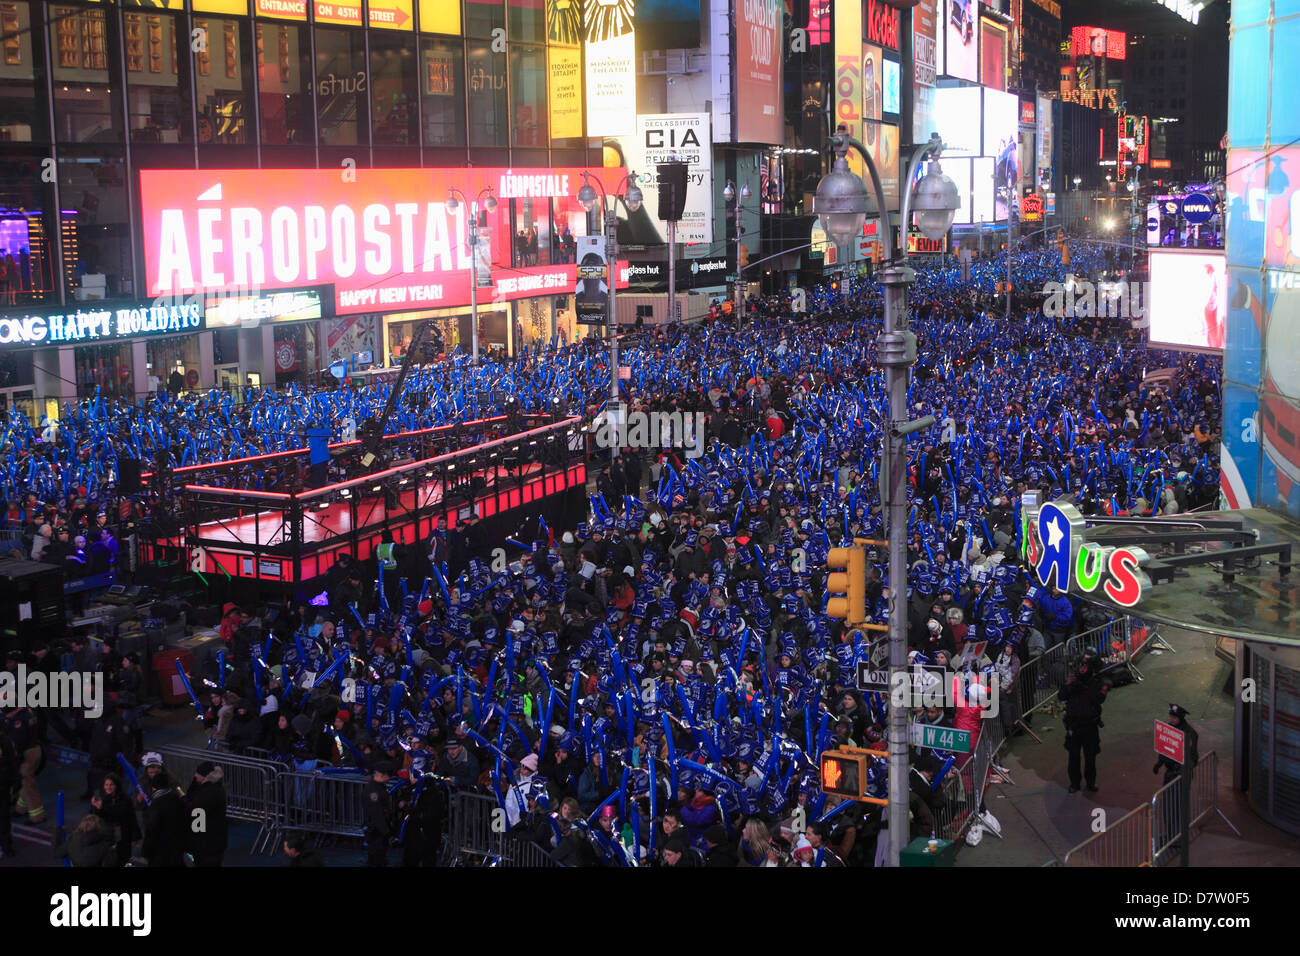 La bohème, foules, New Years Eve, Times Square, Manhattan, New York City, USA Photo Stock